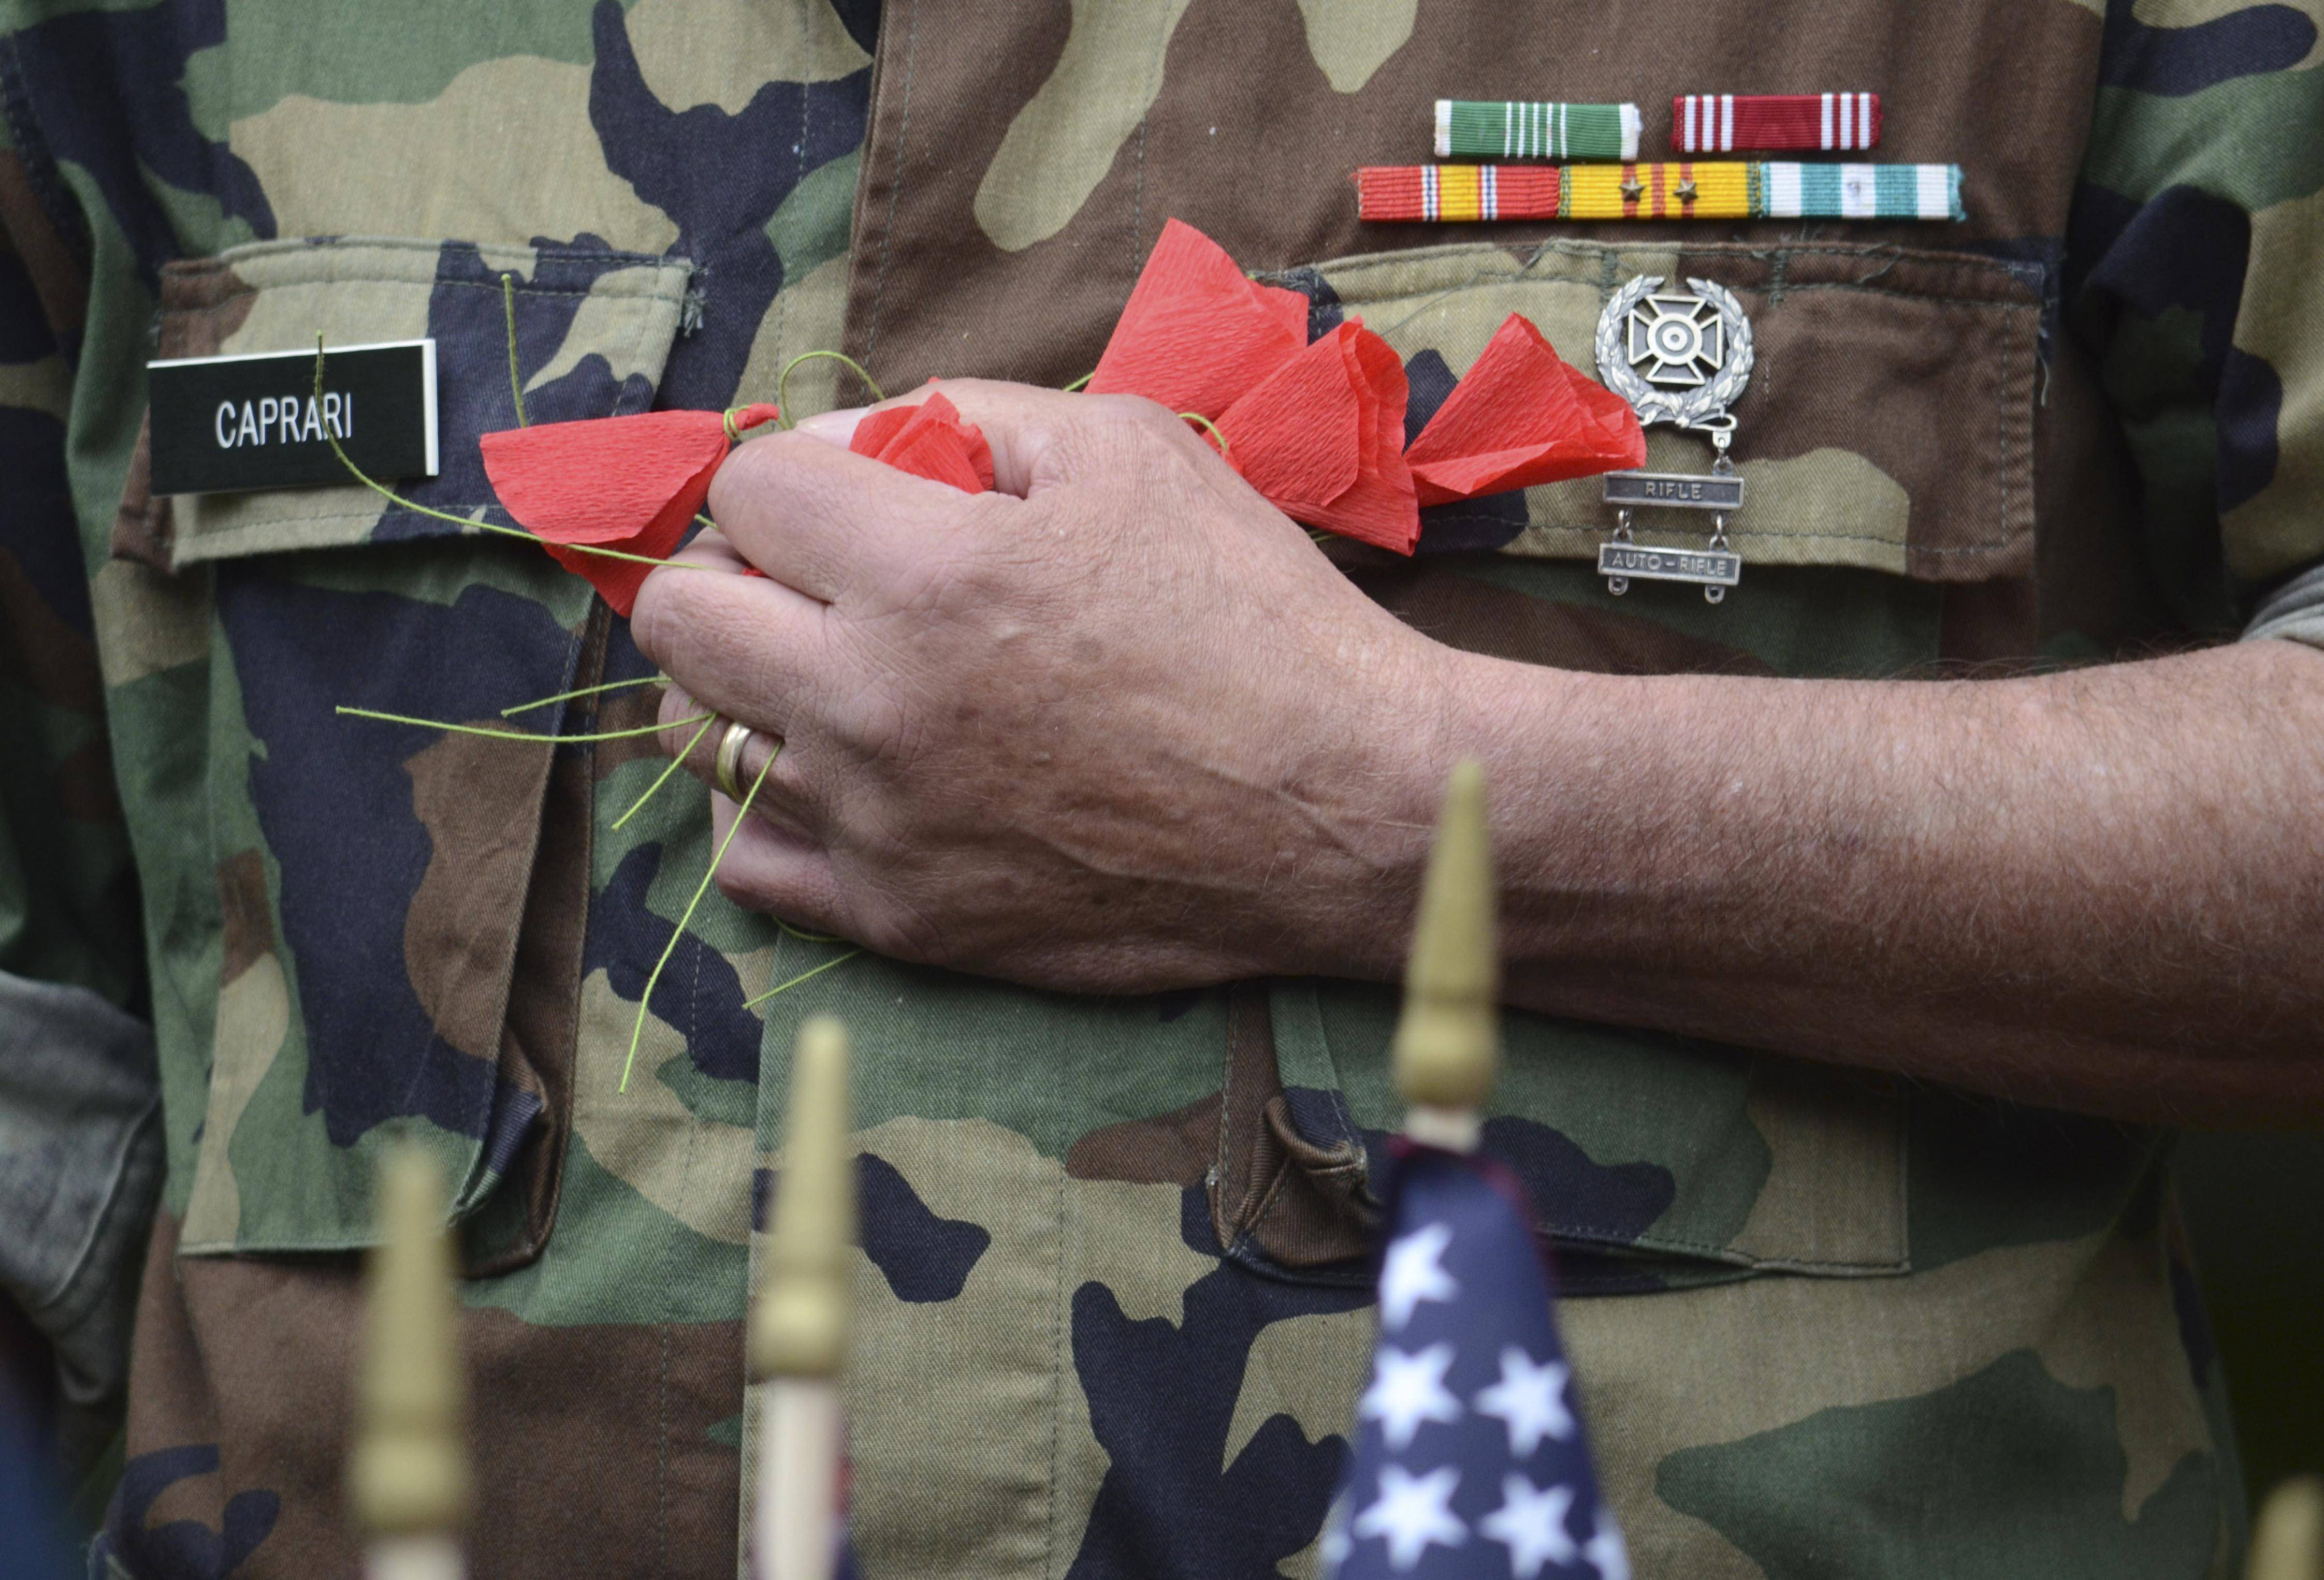 Larry Caprari, a veteran of the Vietnam War, holds poppies to be used to honor those who served in the military and died in service at a Memorial Day Ceremony at the Pittsfield, Mass., Cemetery, Monday May 26, 2014. As the names of those being remembered were read, a poppy was put in an urn to honor them.